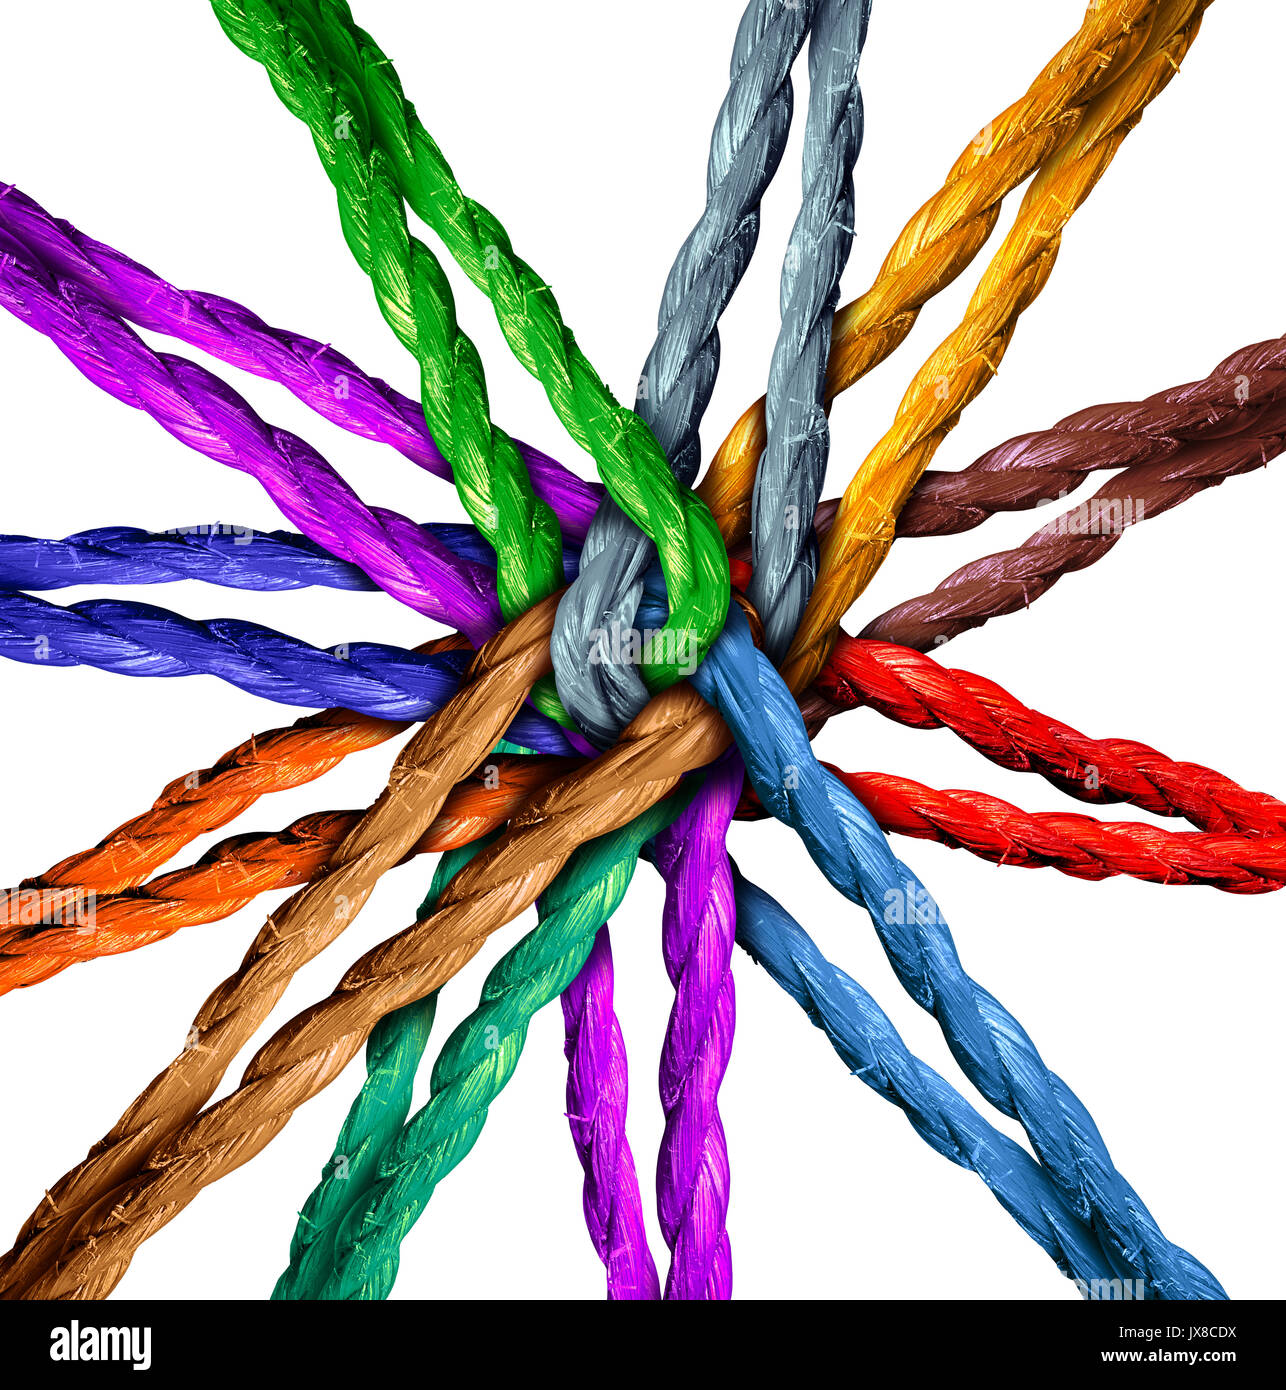 Connected team central network connection business concept as a group of diverse ropes connected in the center 0as - Stock Image